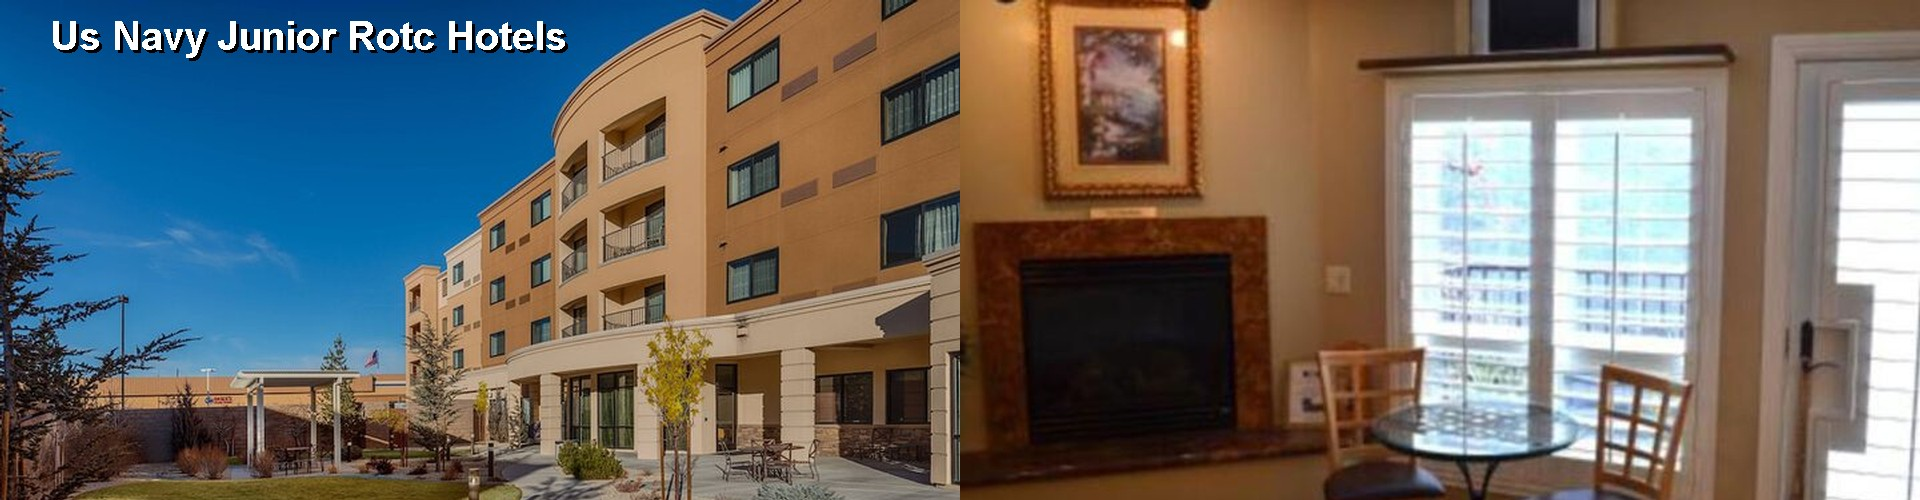 5 Best Hotels near Us Navy Junior Rotc